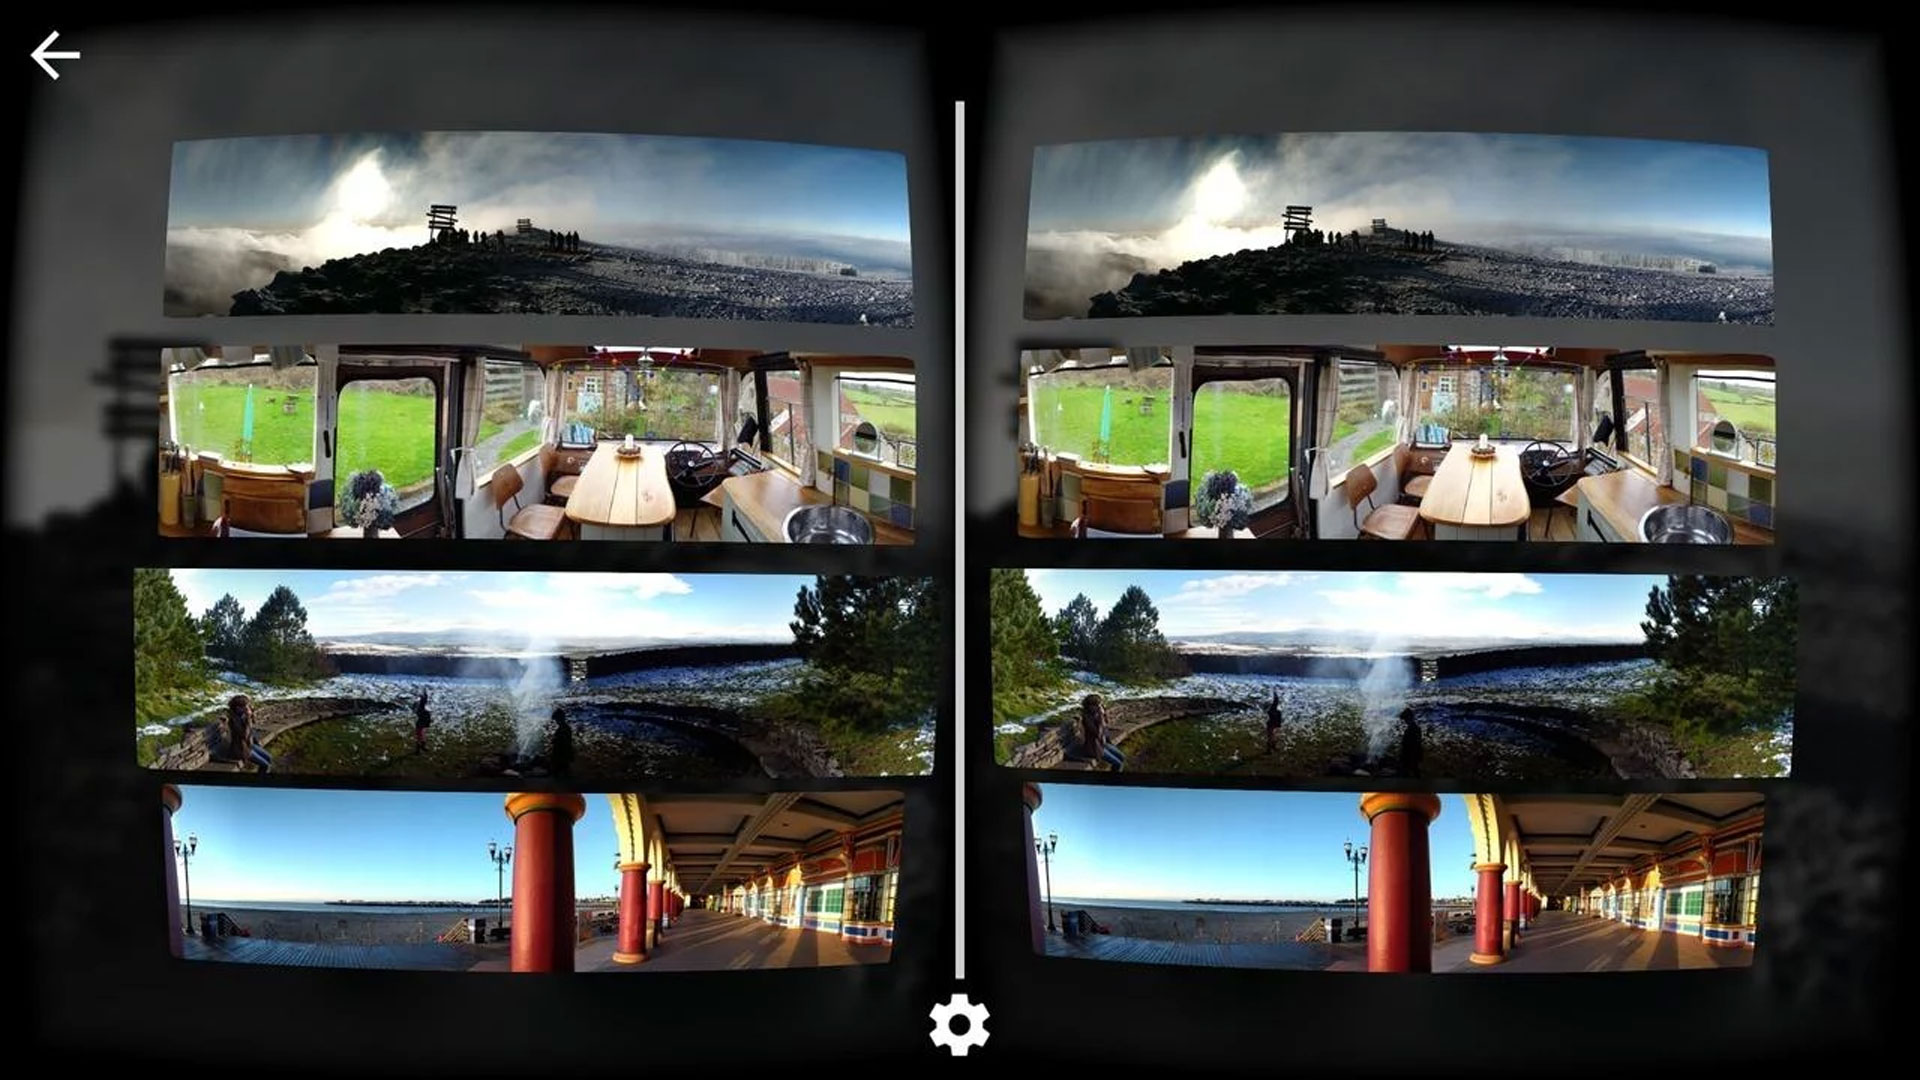 5 VR Apps To Get You Started